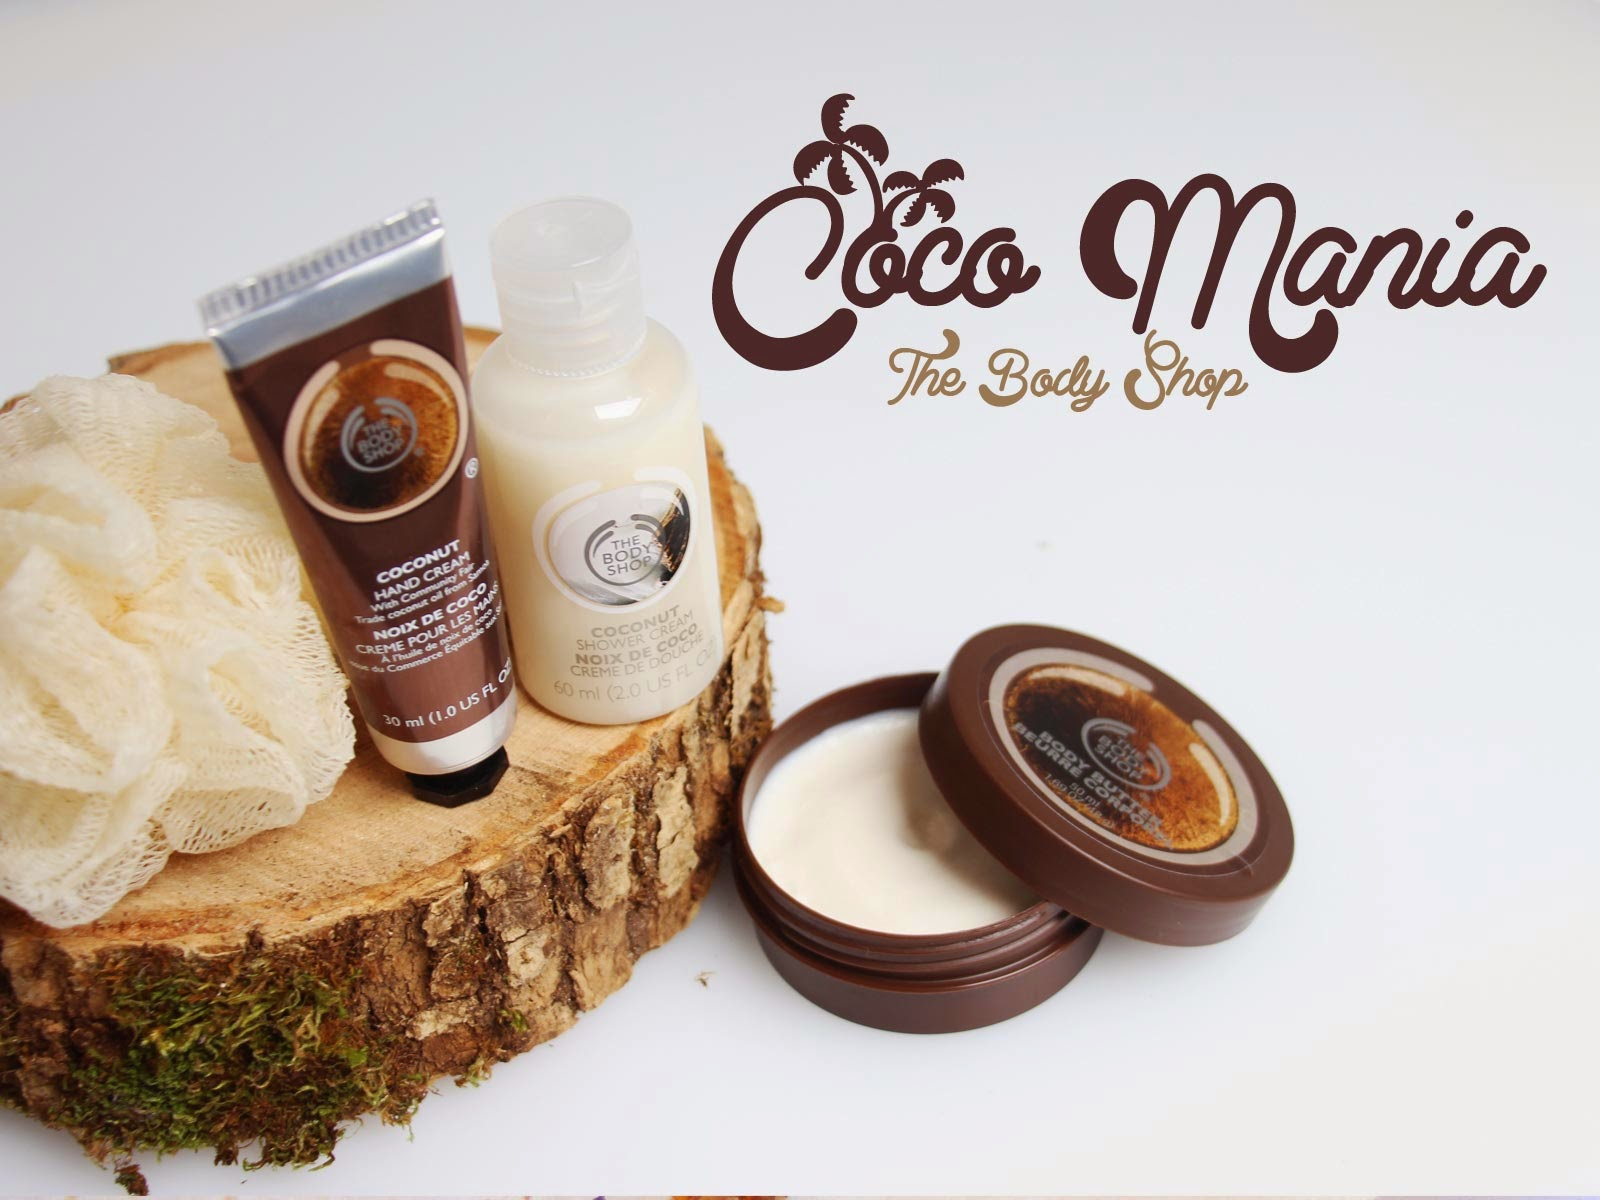 The body shop noix de coco